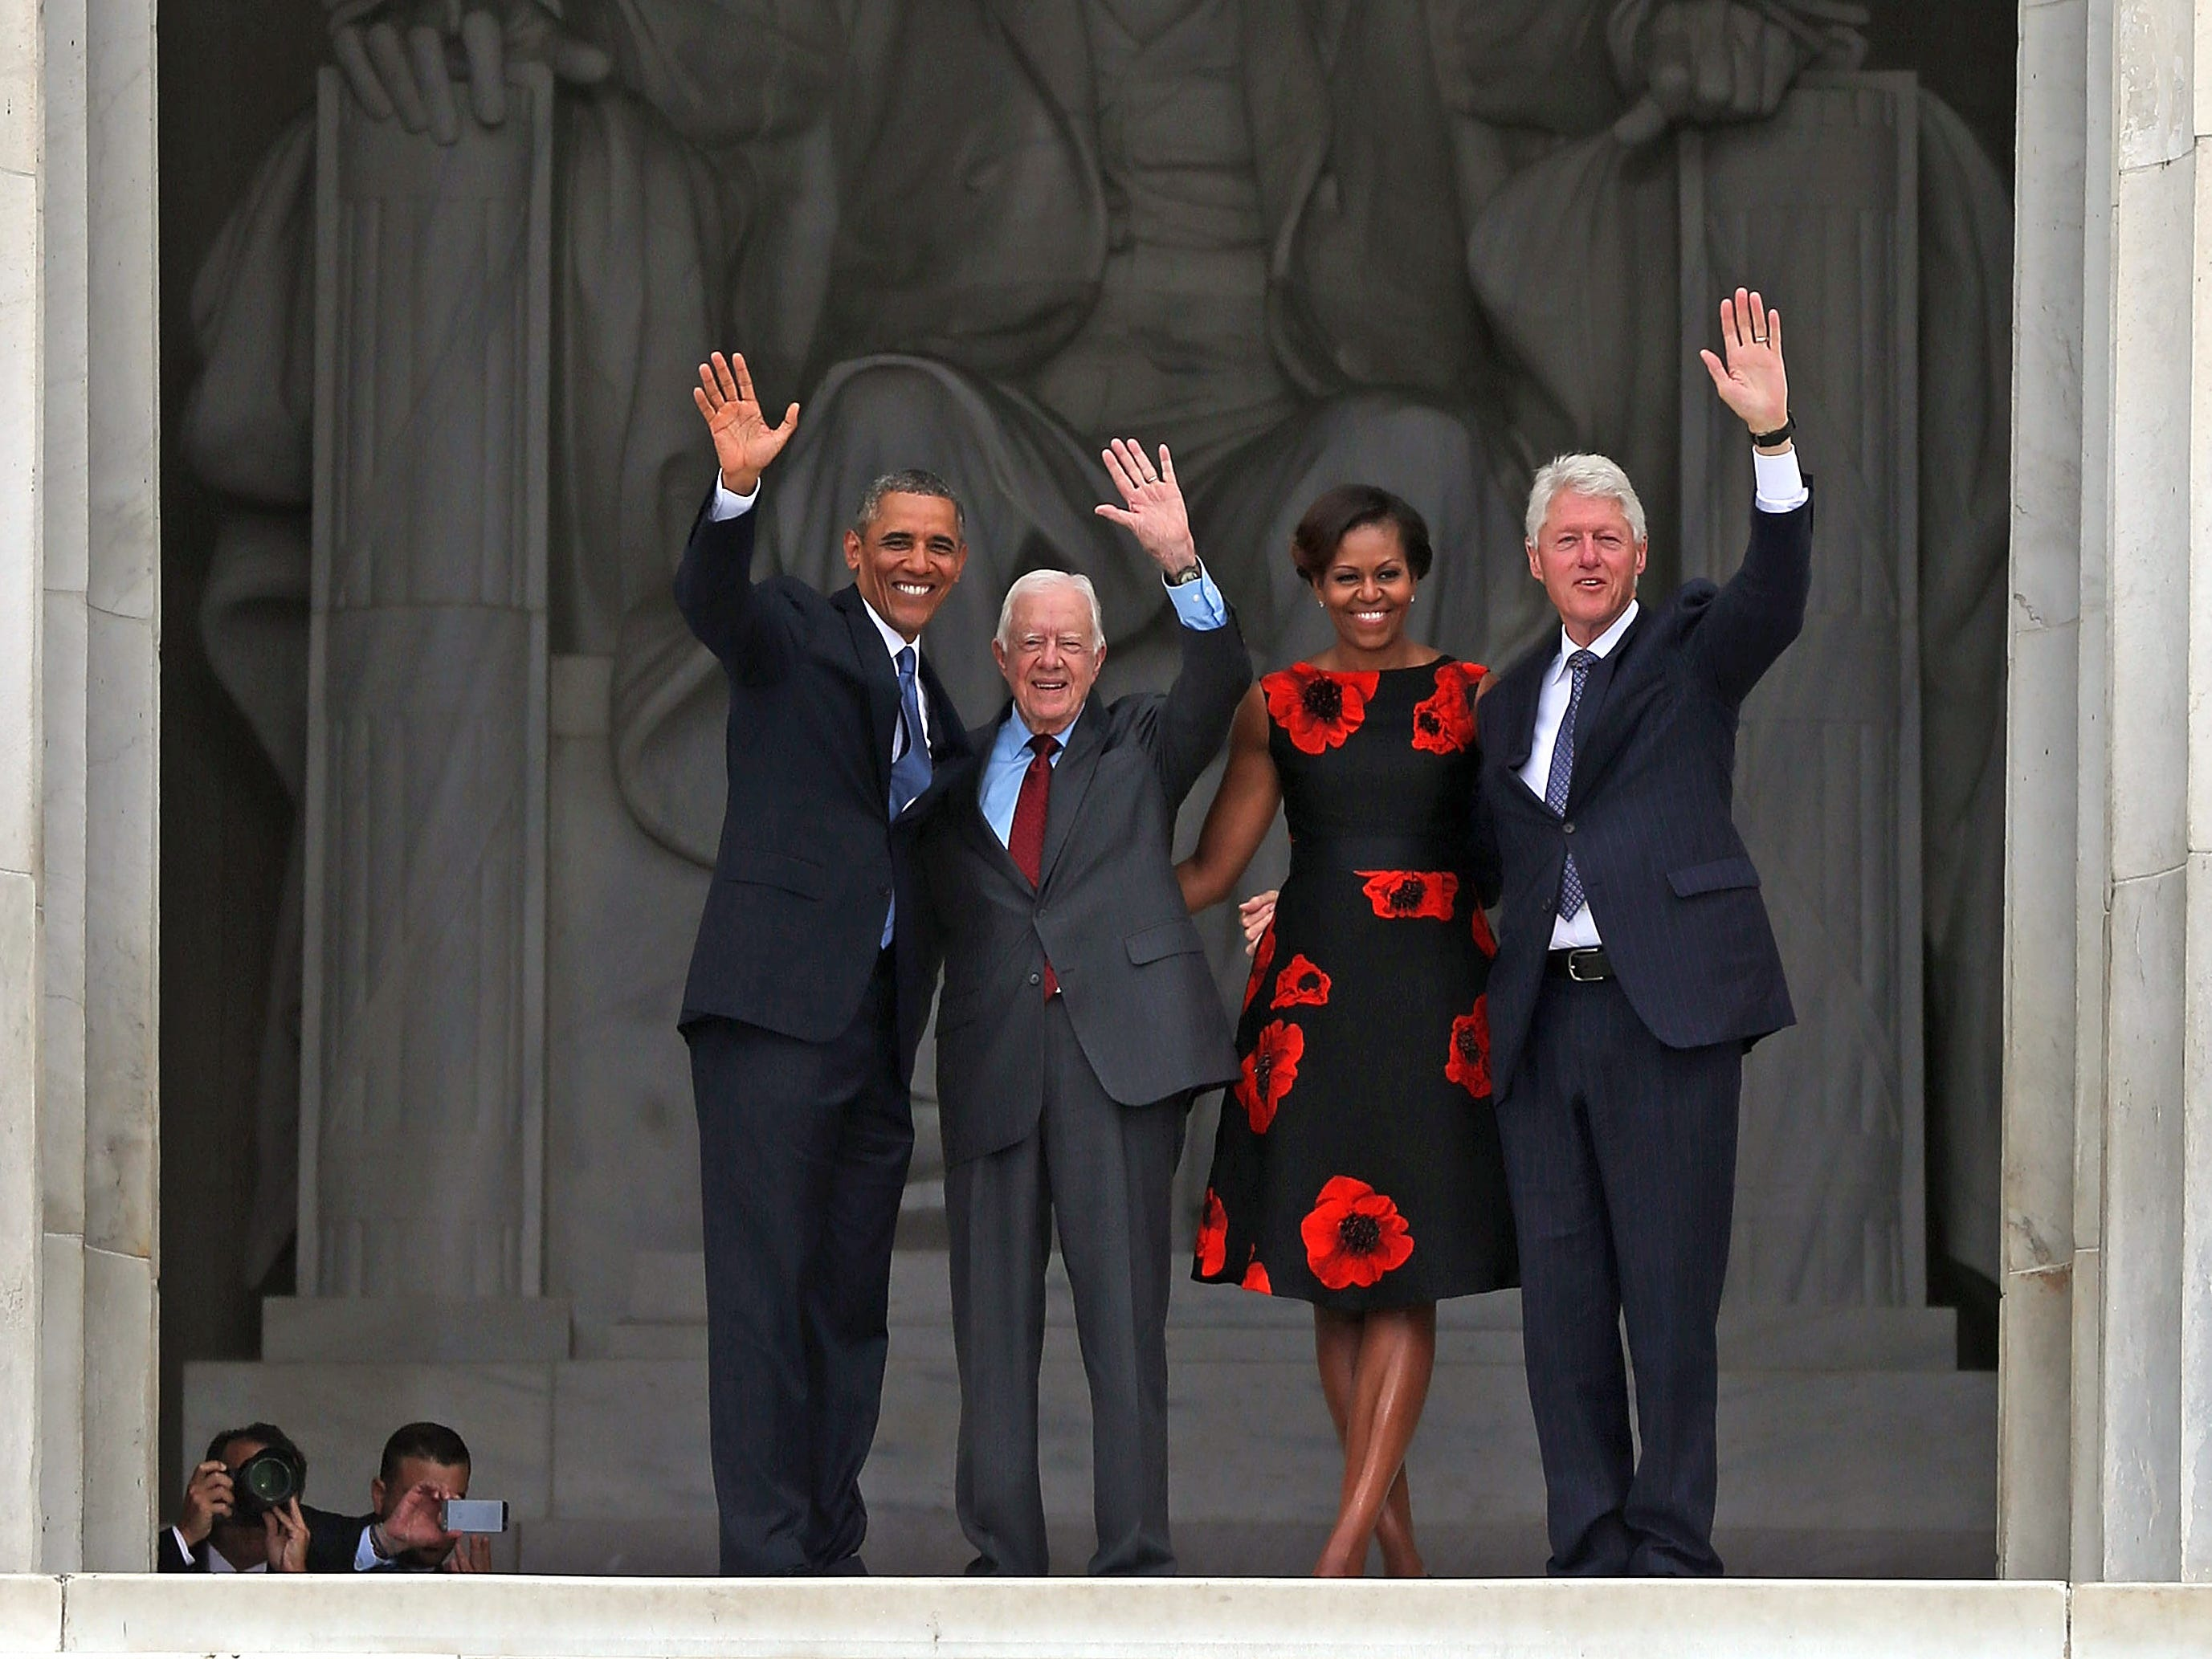 President Barack Obama, left, stands with his wife Michelle Obama, second from right, and former presidents Jimmy Carter, second from left, and Bill Clinton, right,  during the ceremony to commemorate the 50th anniversary of the March on Washington for Jobs and Freedom August 28, 2013 in Washington.